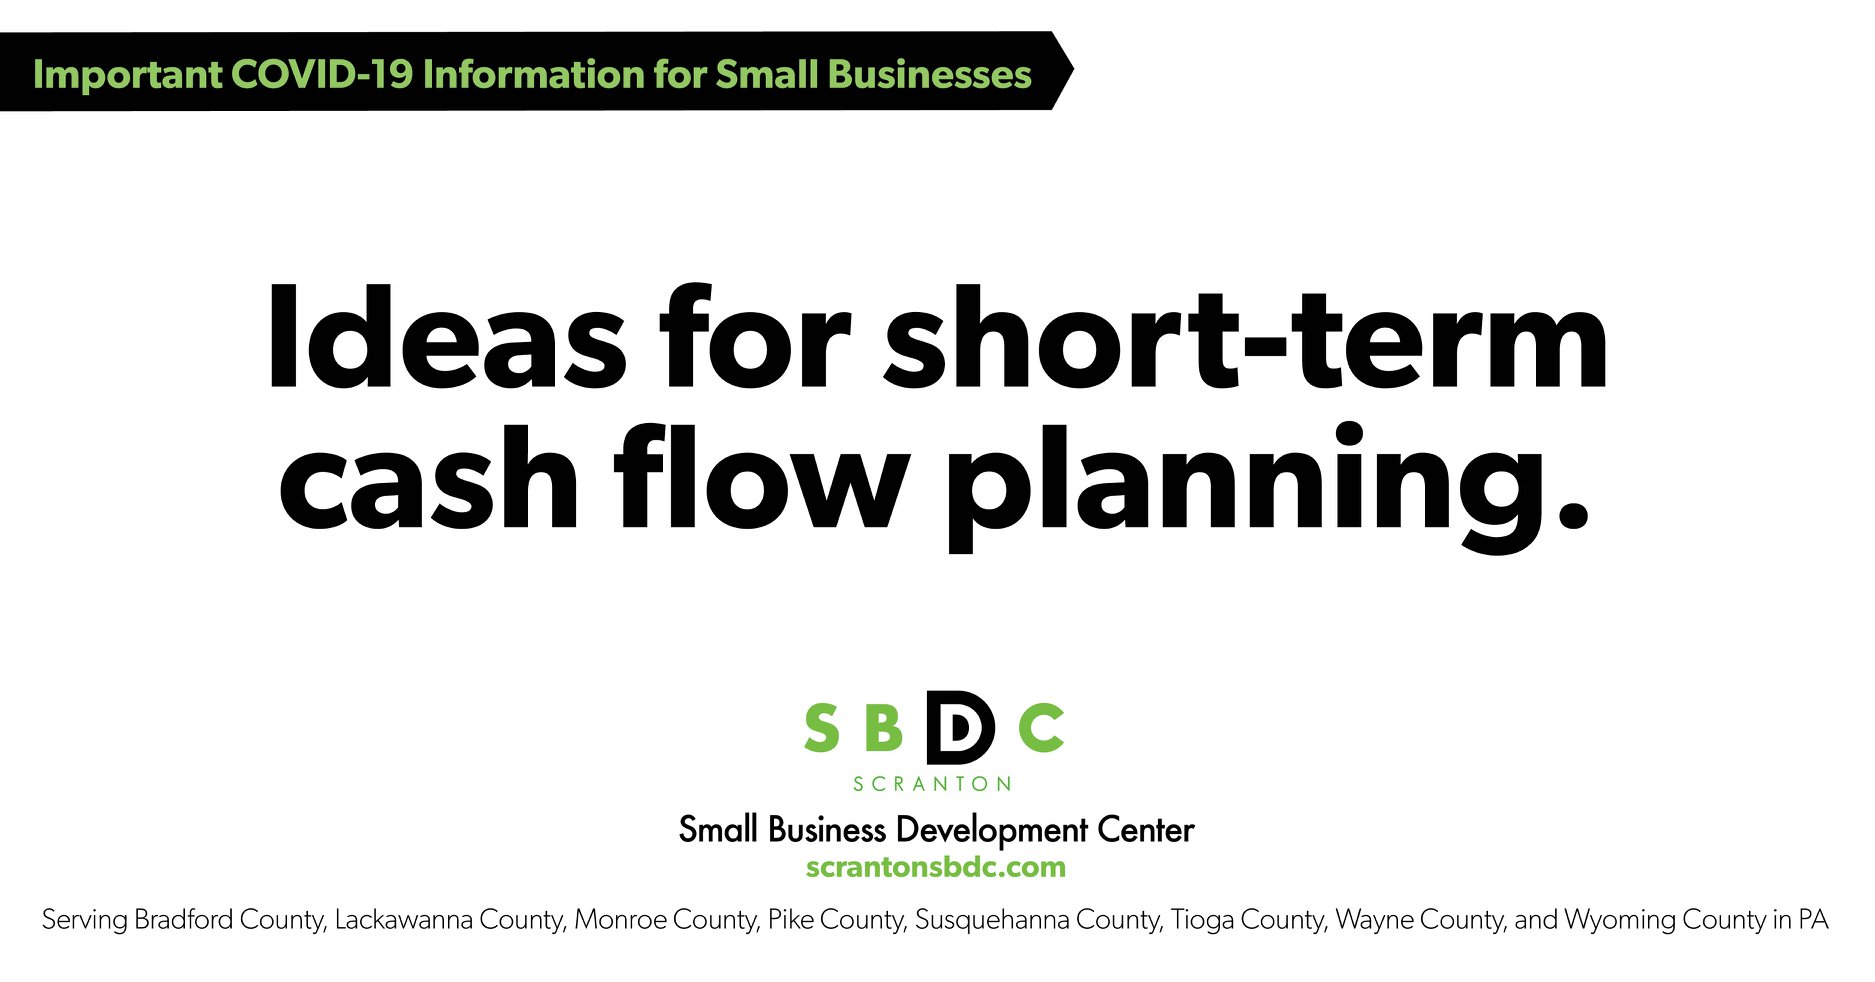 Small Business Ideas For Short Term Cash Flow Planning